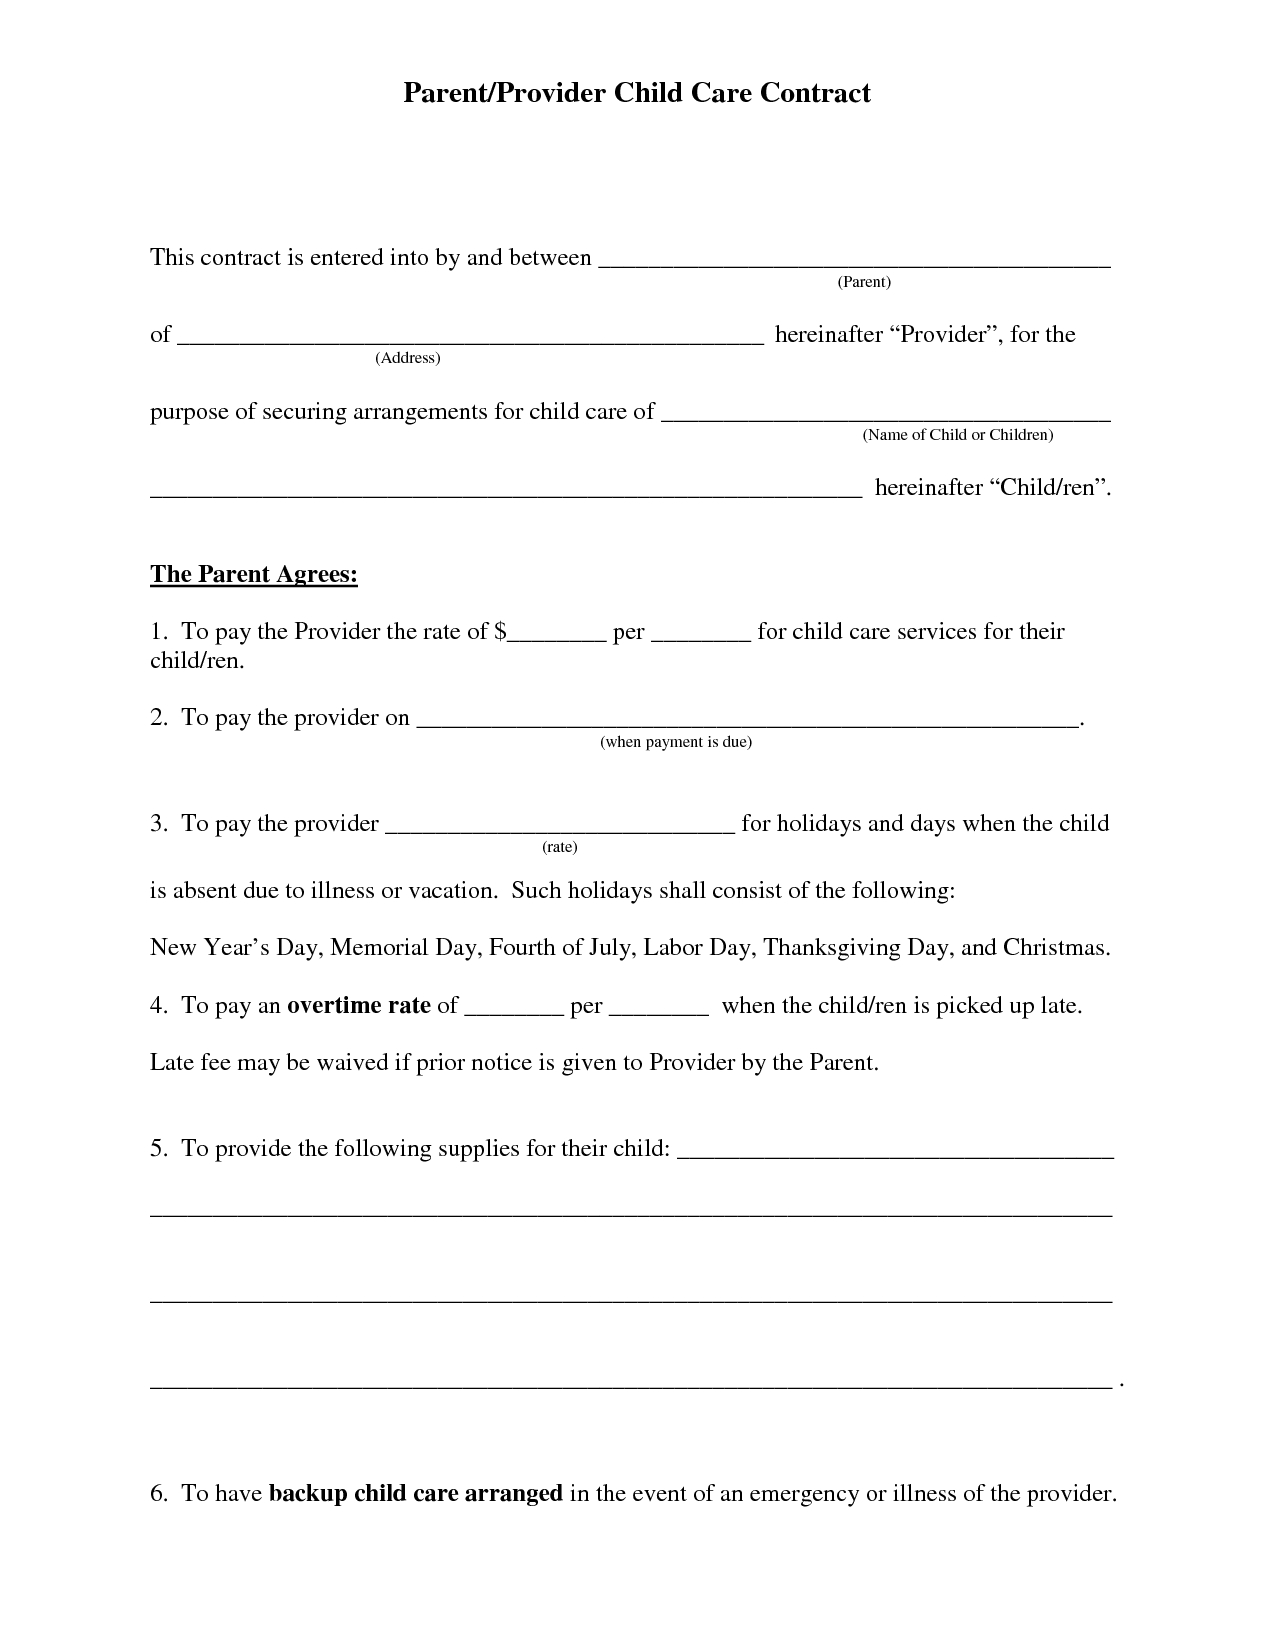 Free Daycare Contract Forms   Daycare Forms   Daycare Contract, Home - Free Printable Daycare Forms